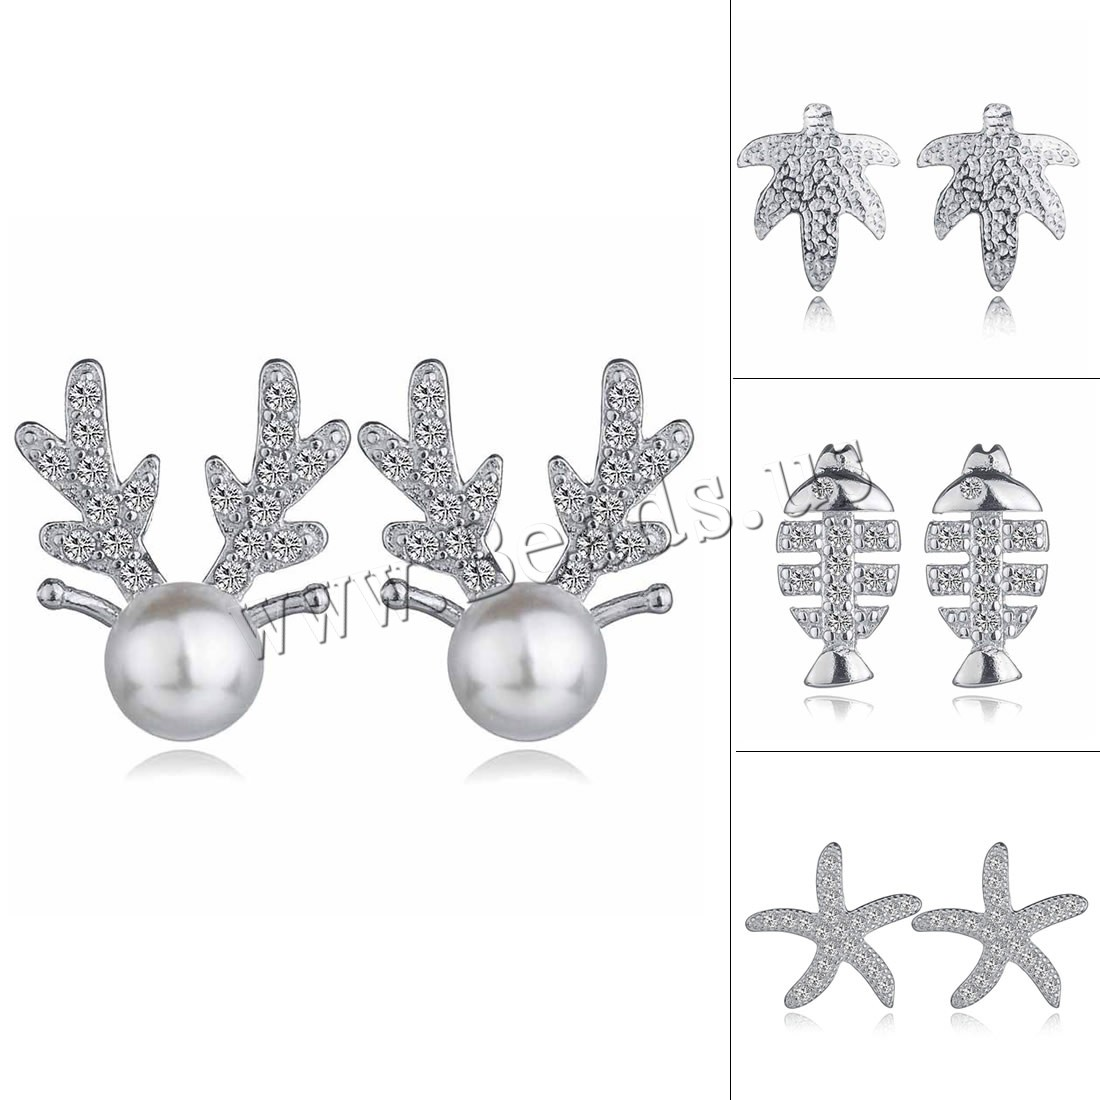 Buy Brass Stud Earring ABS Plastic Pearl silver color plated different styles choice & woman & rhinestone nickel lead & cadmium free 6x11mm 8x9mm 9x13mm 12x12mm Sold Pair